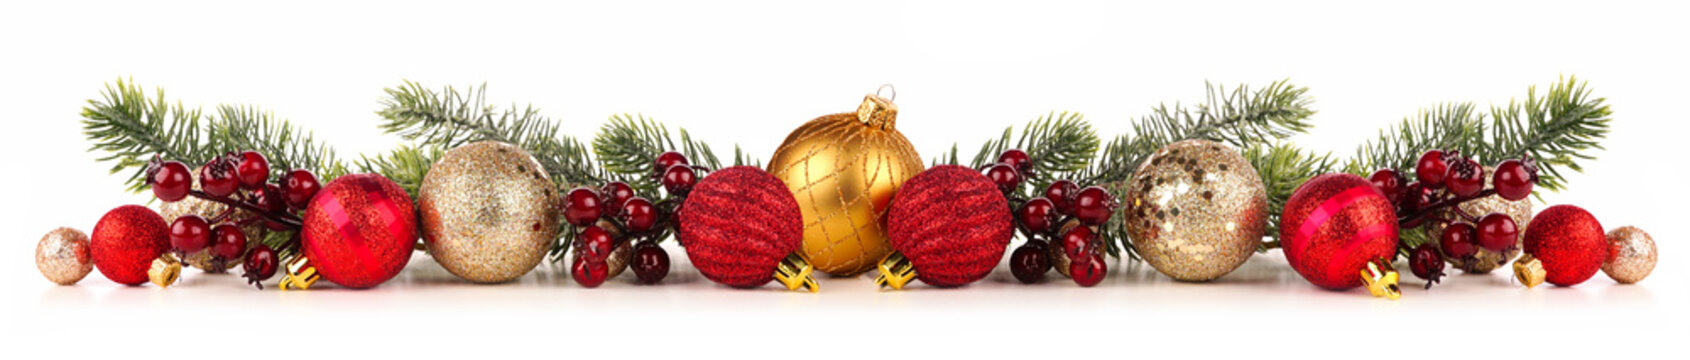 Christmas border of red and gold ornaments with branches. Side view isolated on a white background.